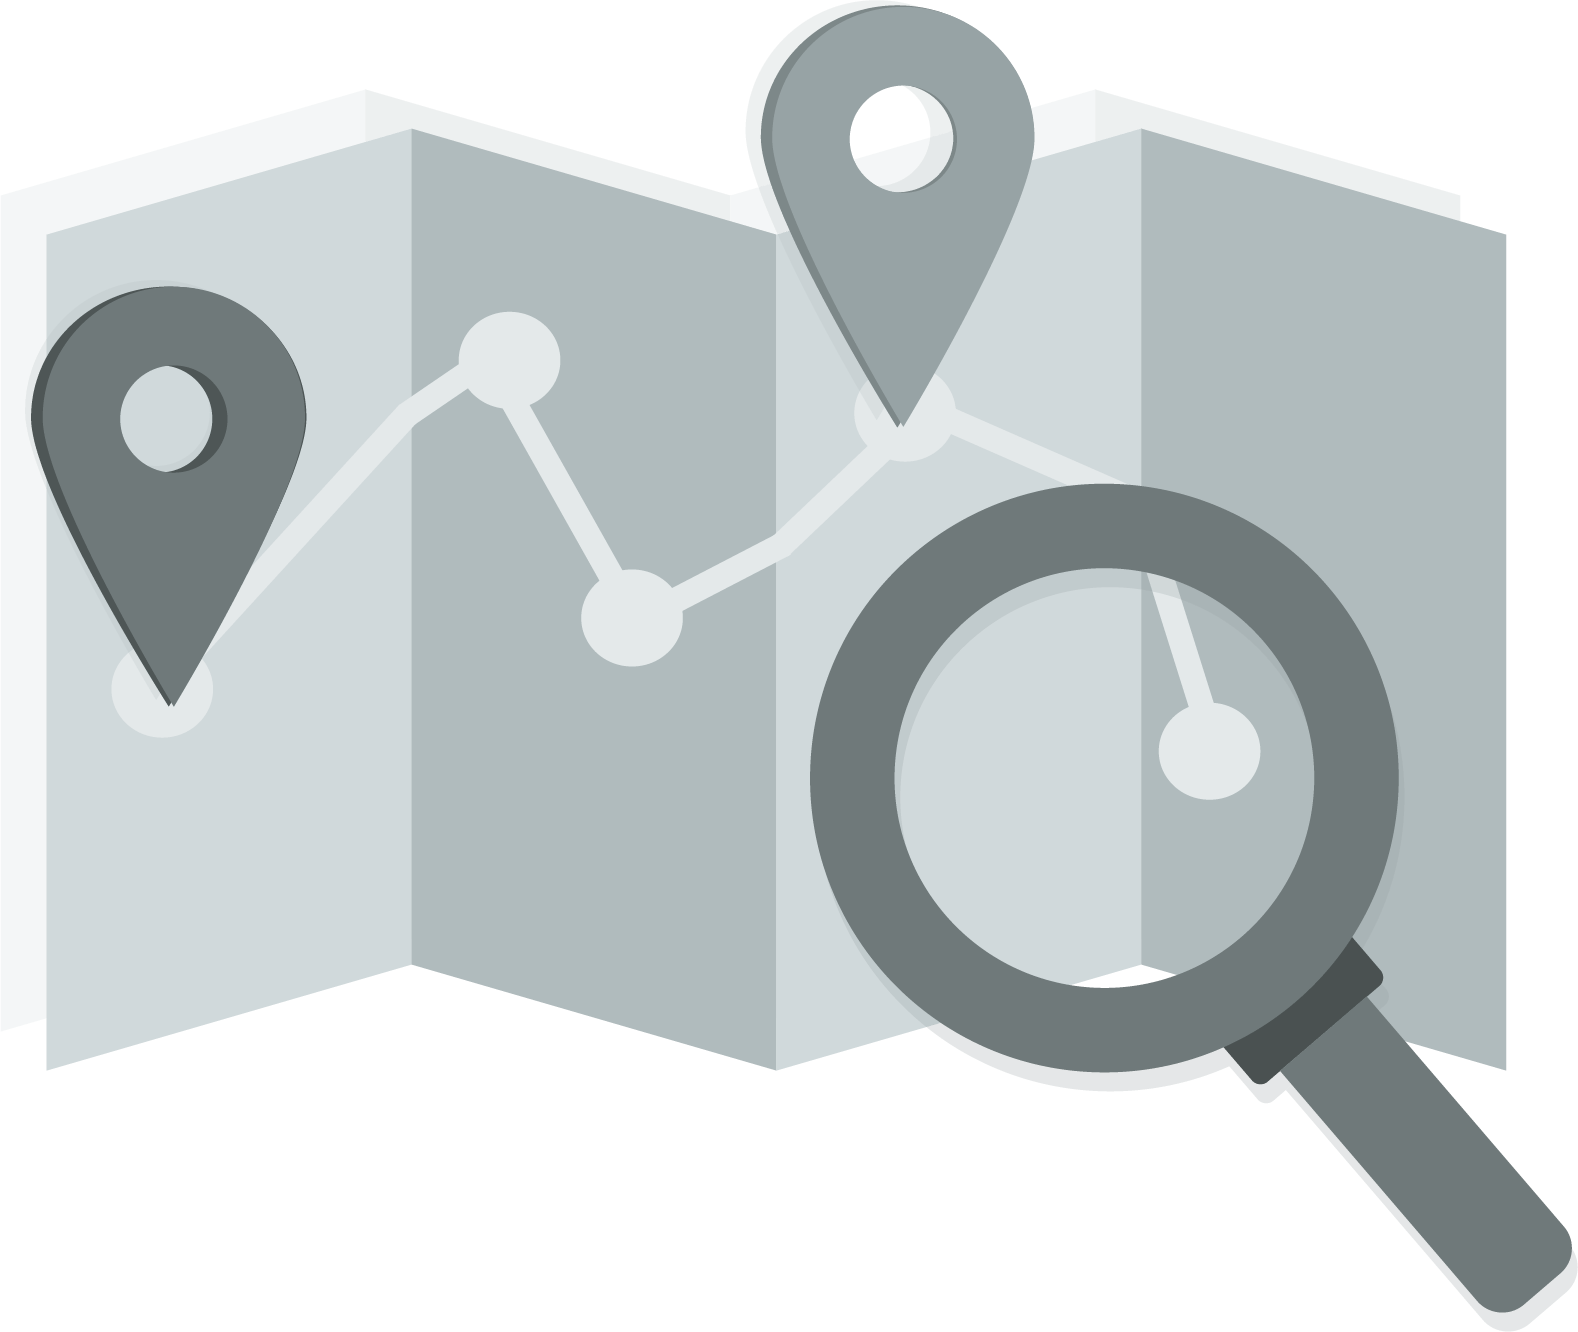 Location based analytics picto